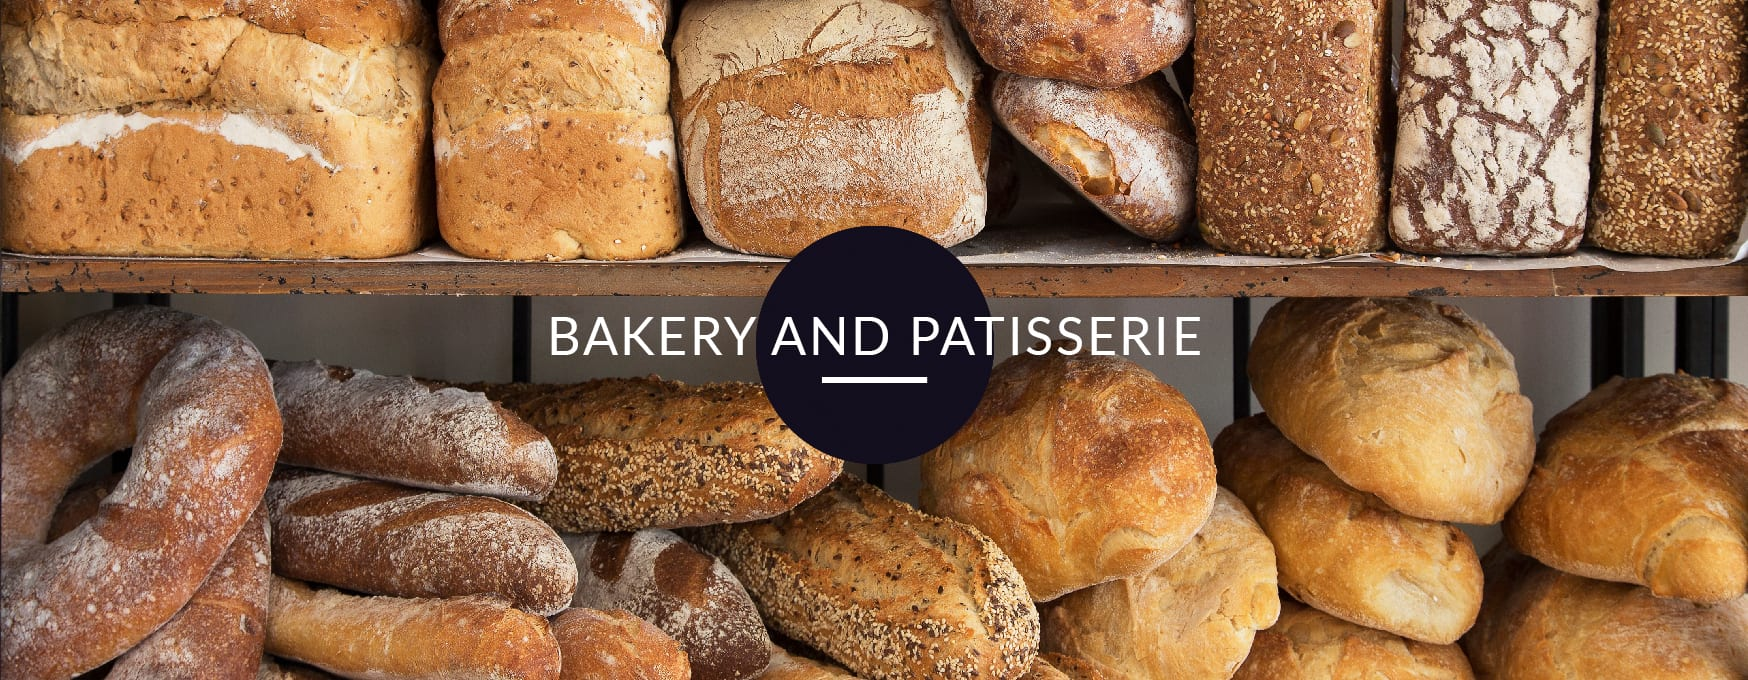 BAKERY AND PATISSERIE